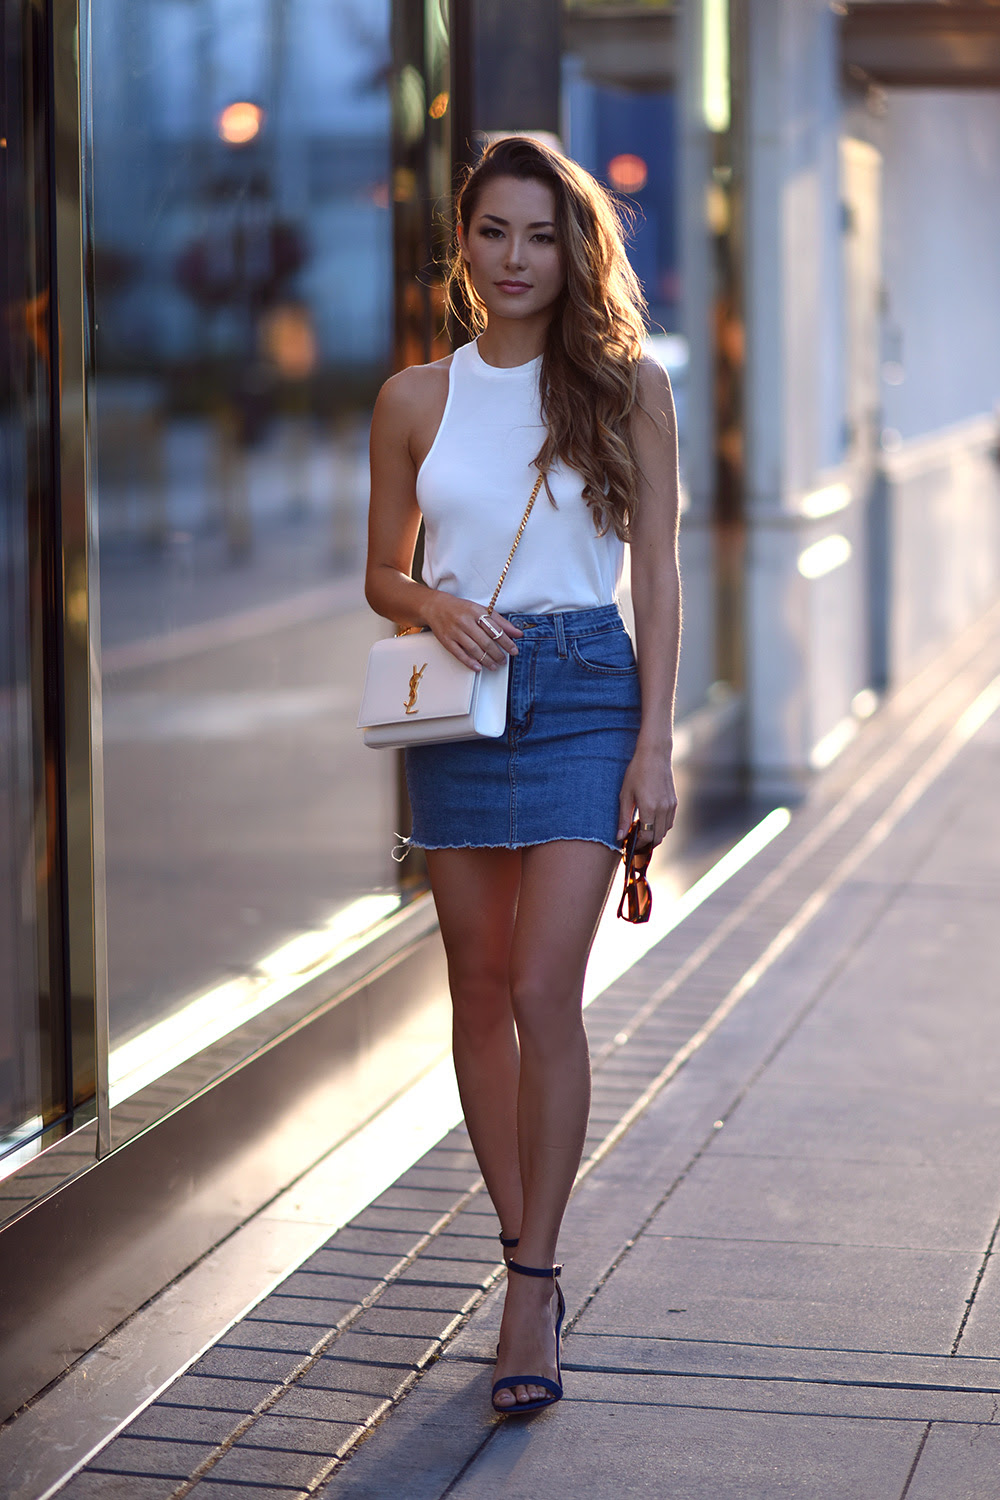 mini skirt outfits cute ways to wear a mini skirt  just